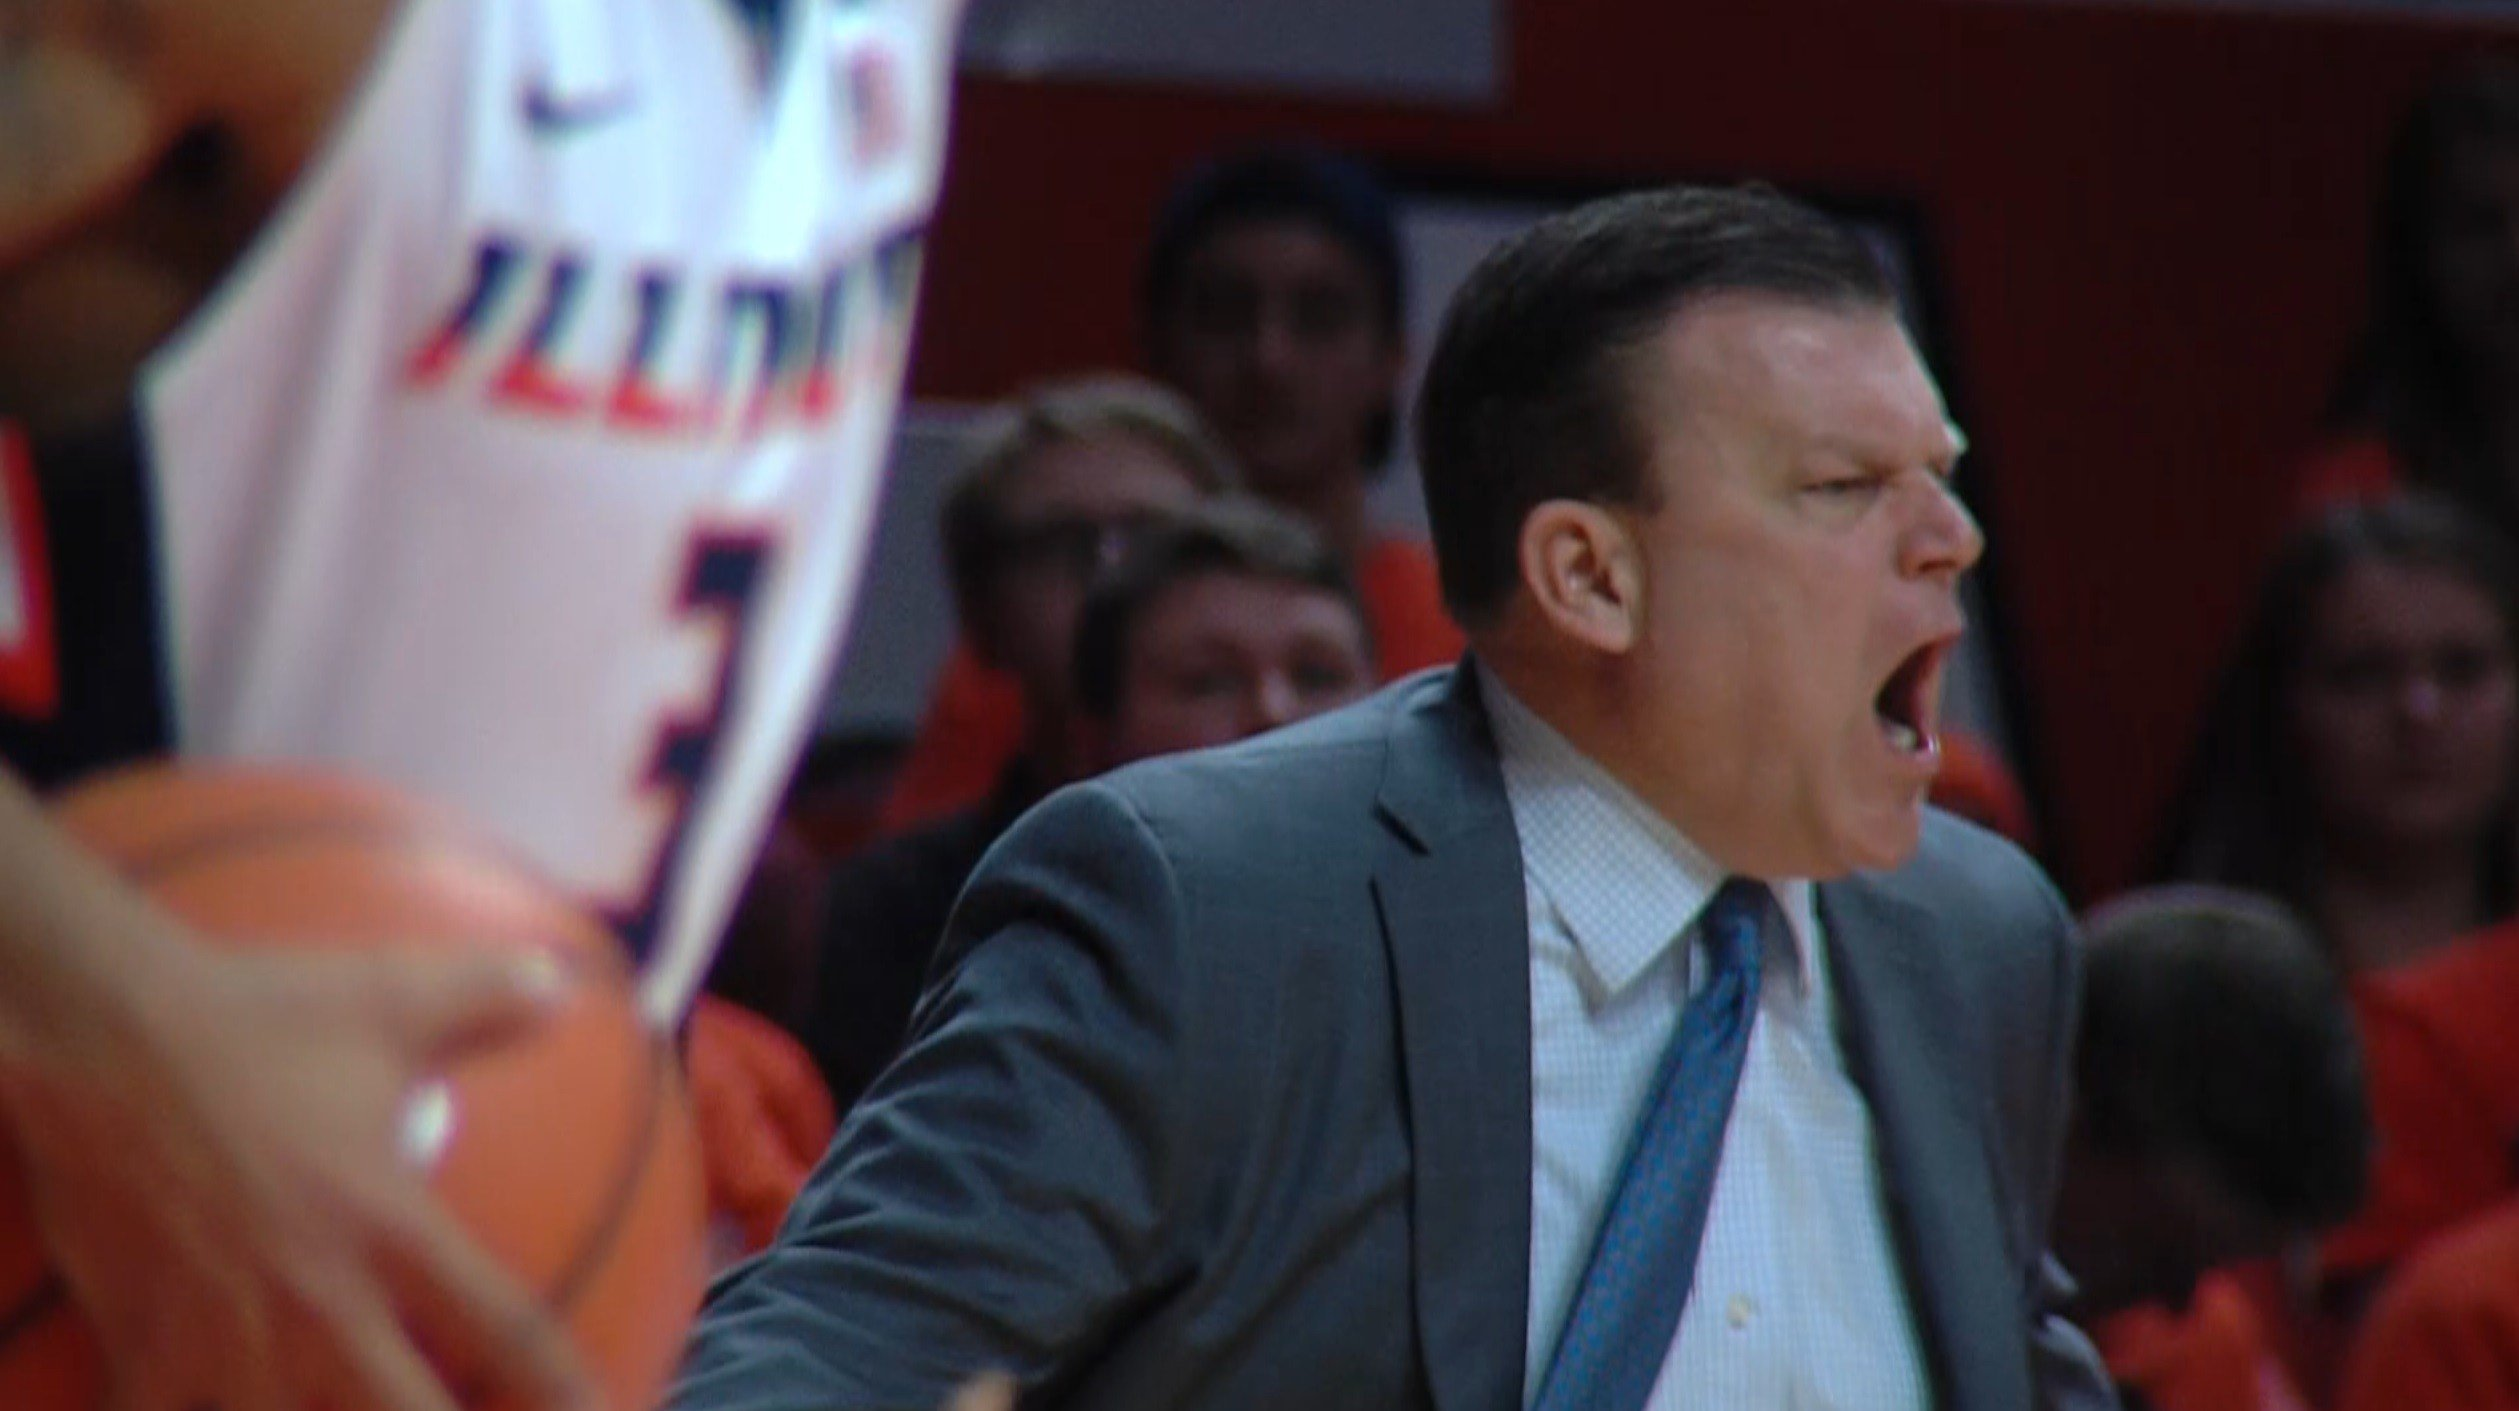 Illinois head coach Brad Underwood has been vocal about his team's turnover struggles, and on Wednesday against Austin Peay the Illini committed 25 of them.